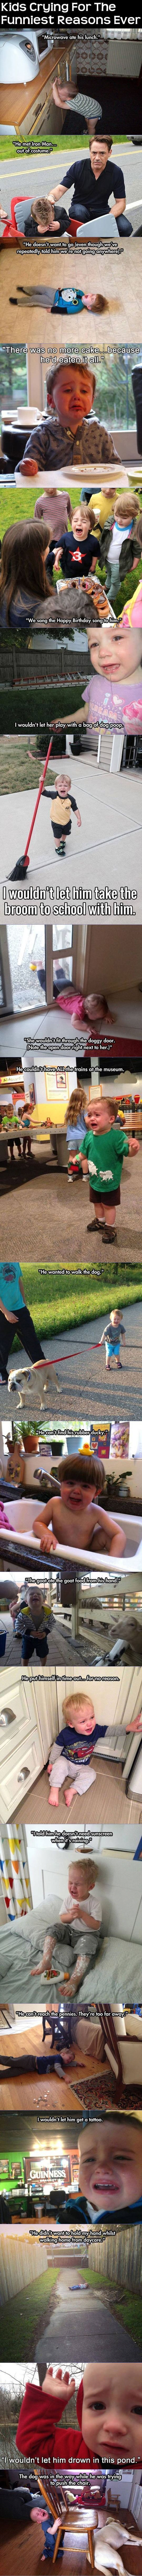 Kids Crying For The Funniest Reasons Ever,  #Crying #Funniest #funnyphotochildren #Kids #Reasons